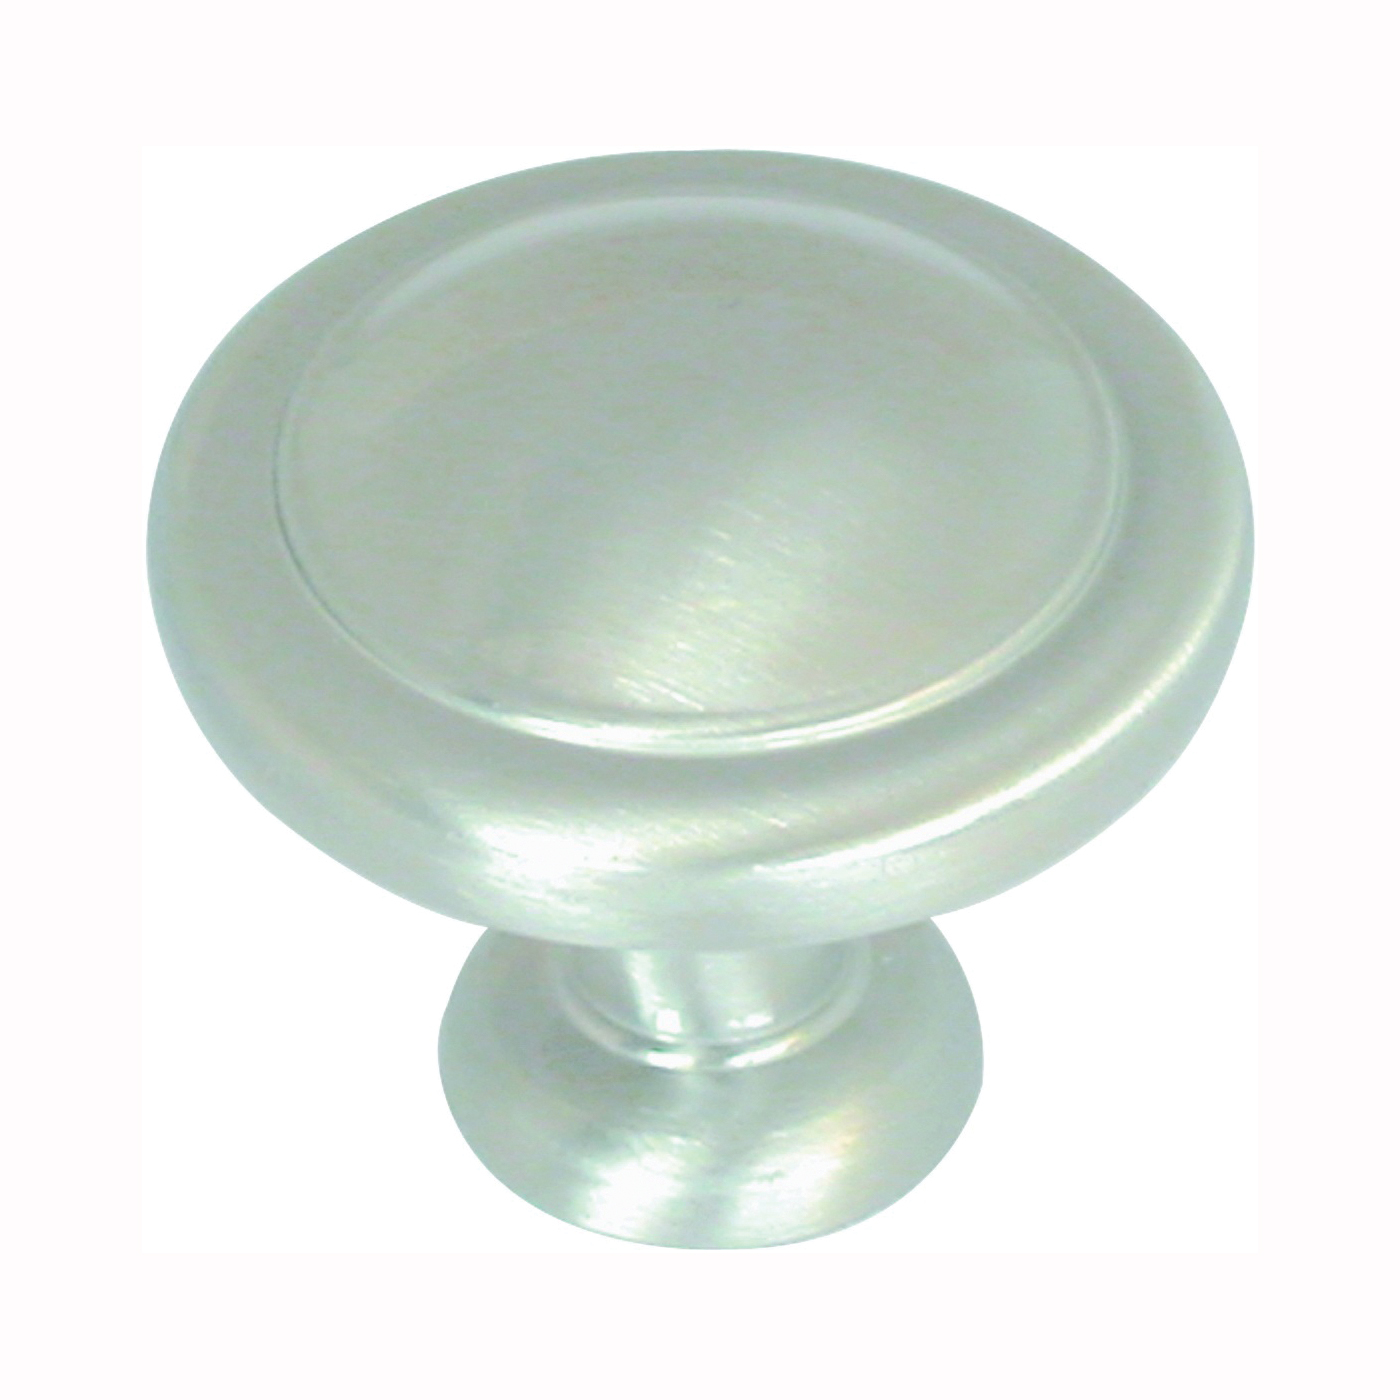 Picture of Amerock BP1387G10 Cabinet Knob, 1-1/16 in Projection, Zinc, Satin Nickel